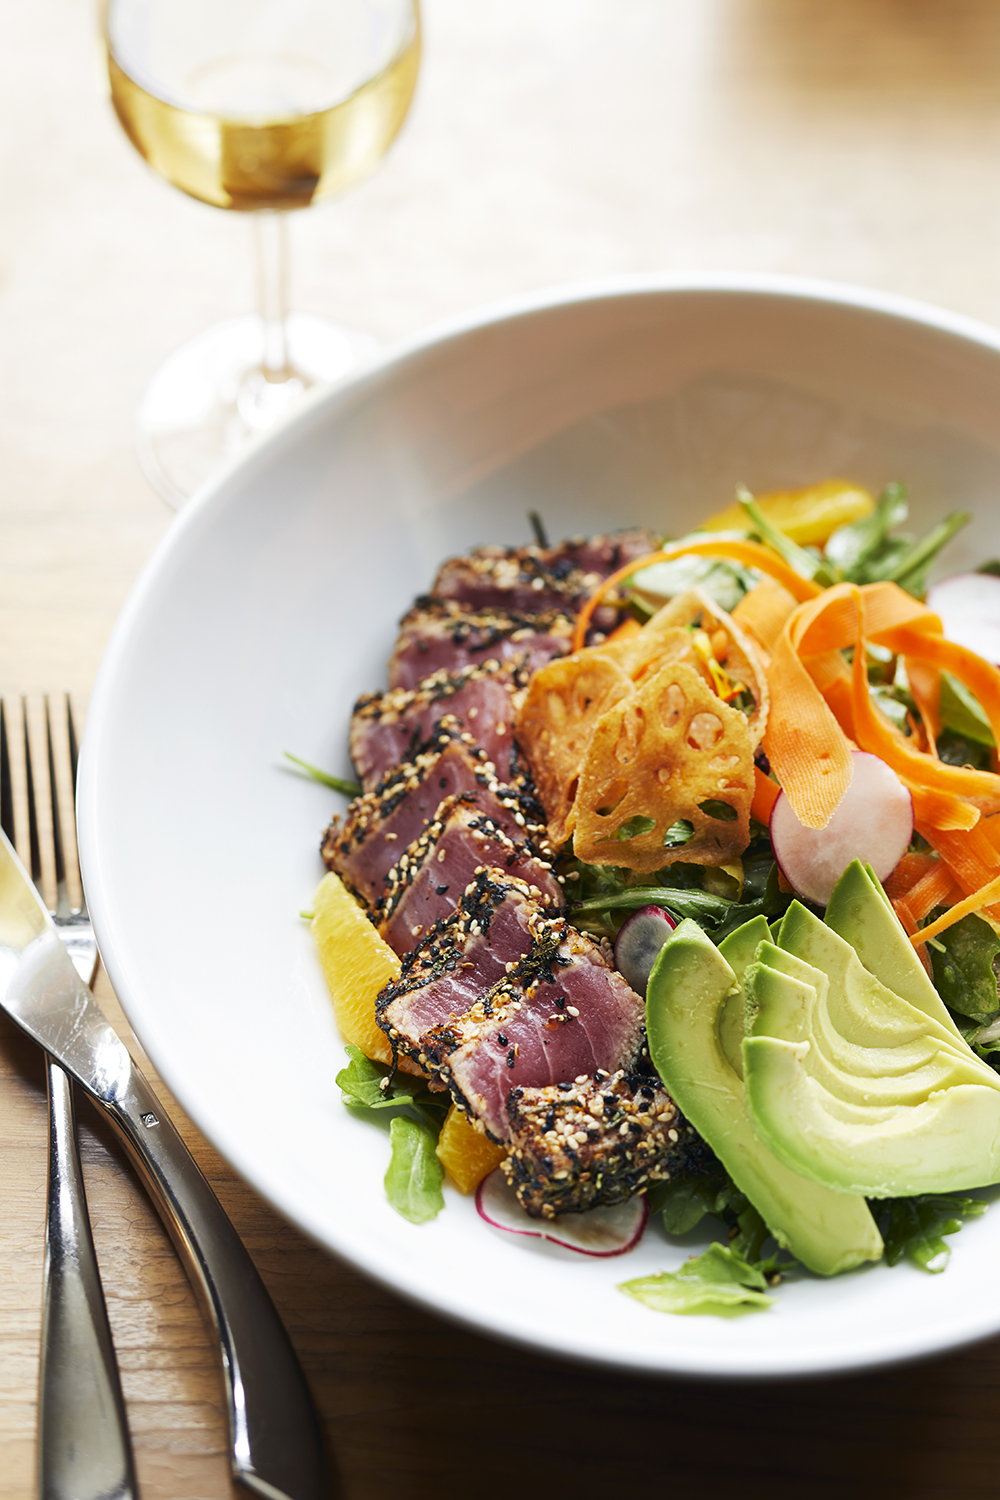 The hotel's restaurant, South Lake Kitchen + Bar, offers healthy Pacific Northwest-inspired dining options.